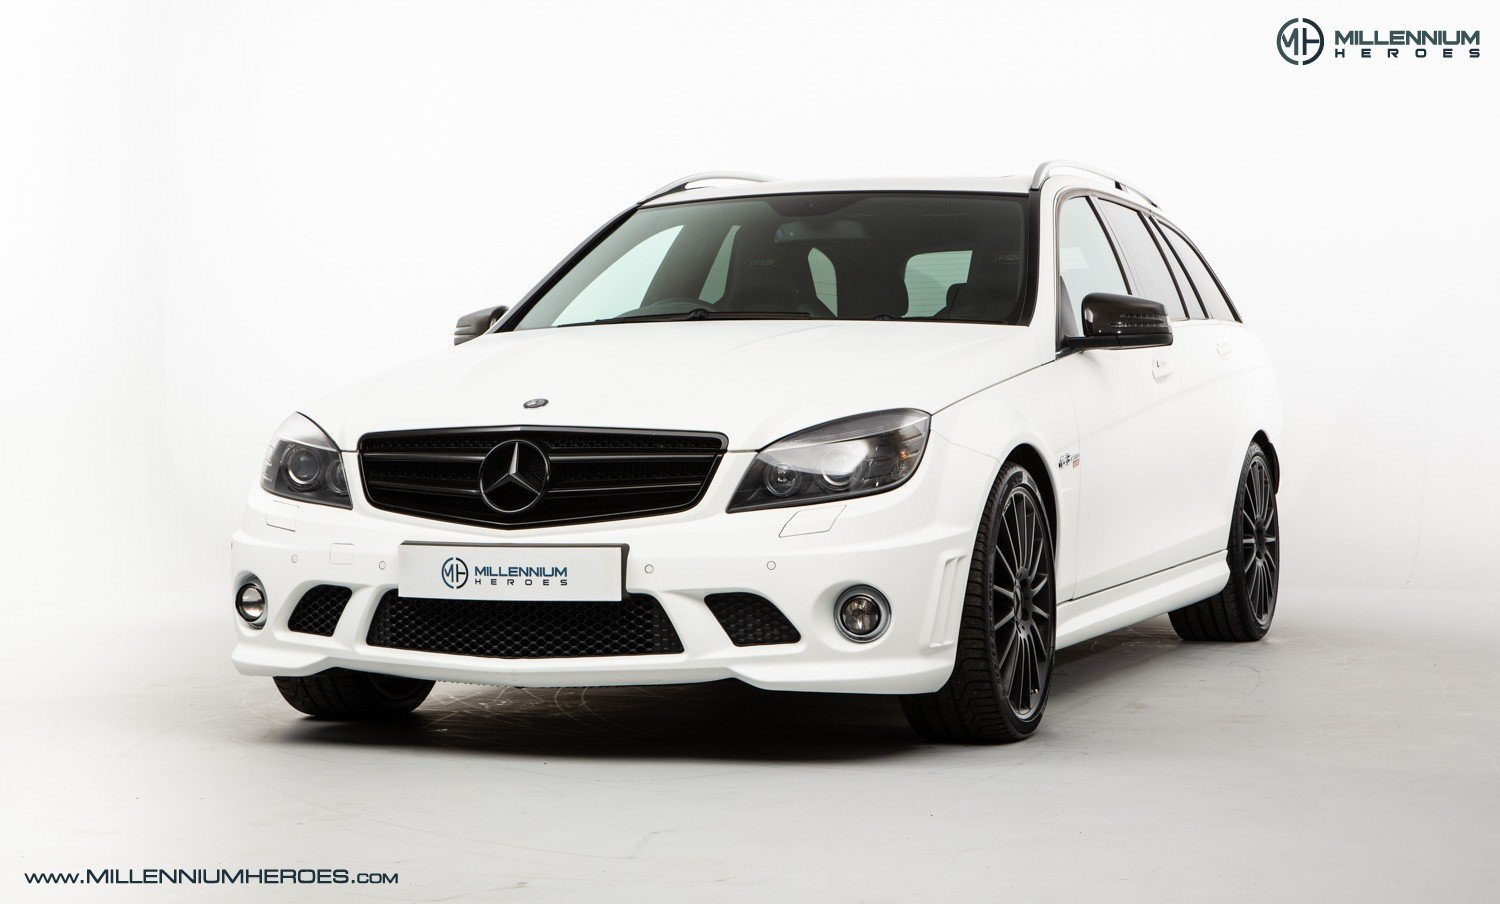 2010 MERCEDES C63 DR520 // EXCLUSIVE GB SPECIAL EDITION / 1 OF 20 For Sale (picture 1 of 6)